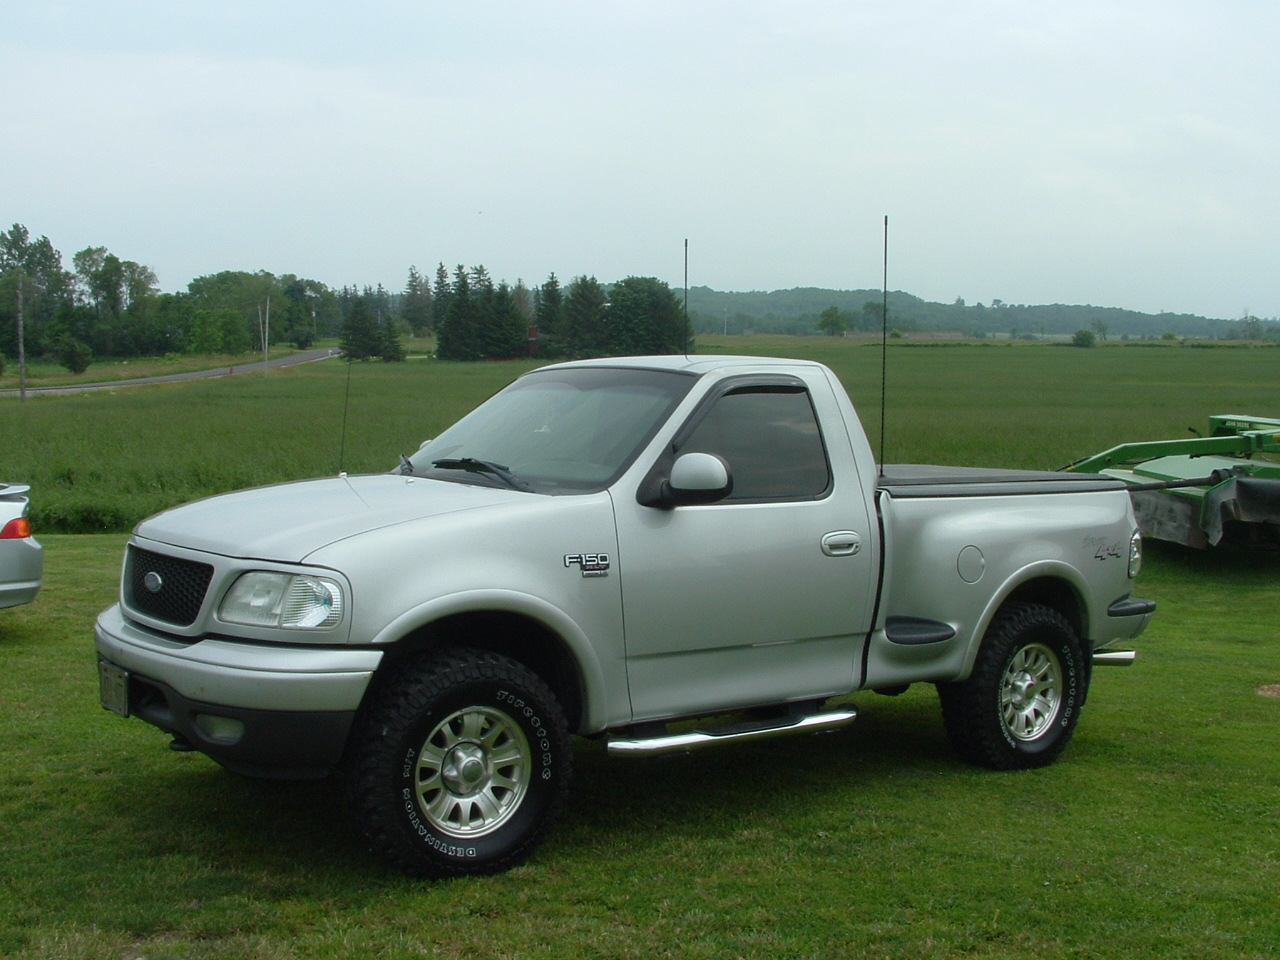 tailgator 2002 ford f150 regular cab specs photos modification info at cardomain. Black Bedroom Furniture Sets. Home Design Ideas